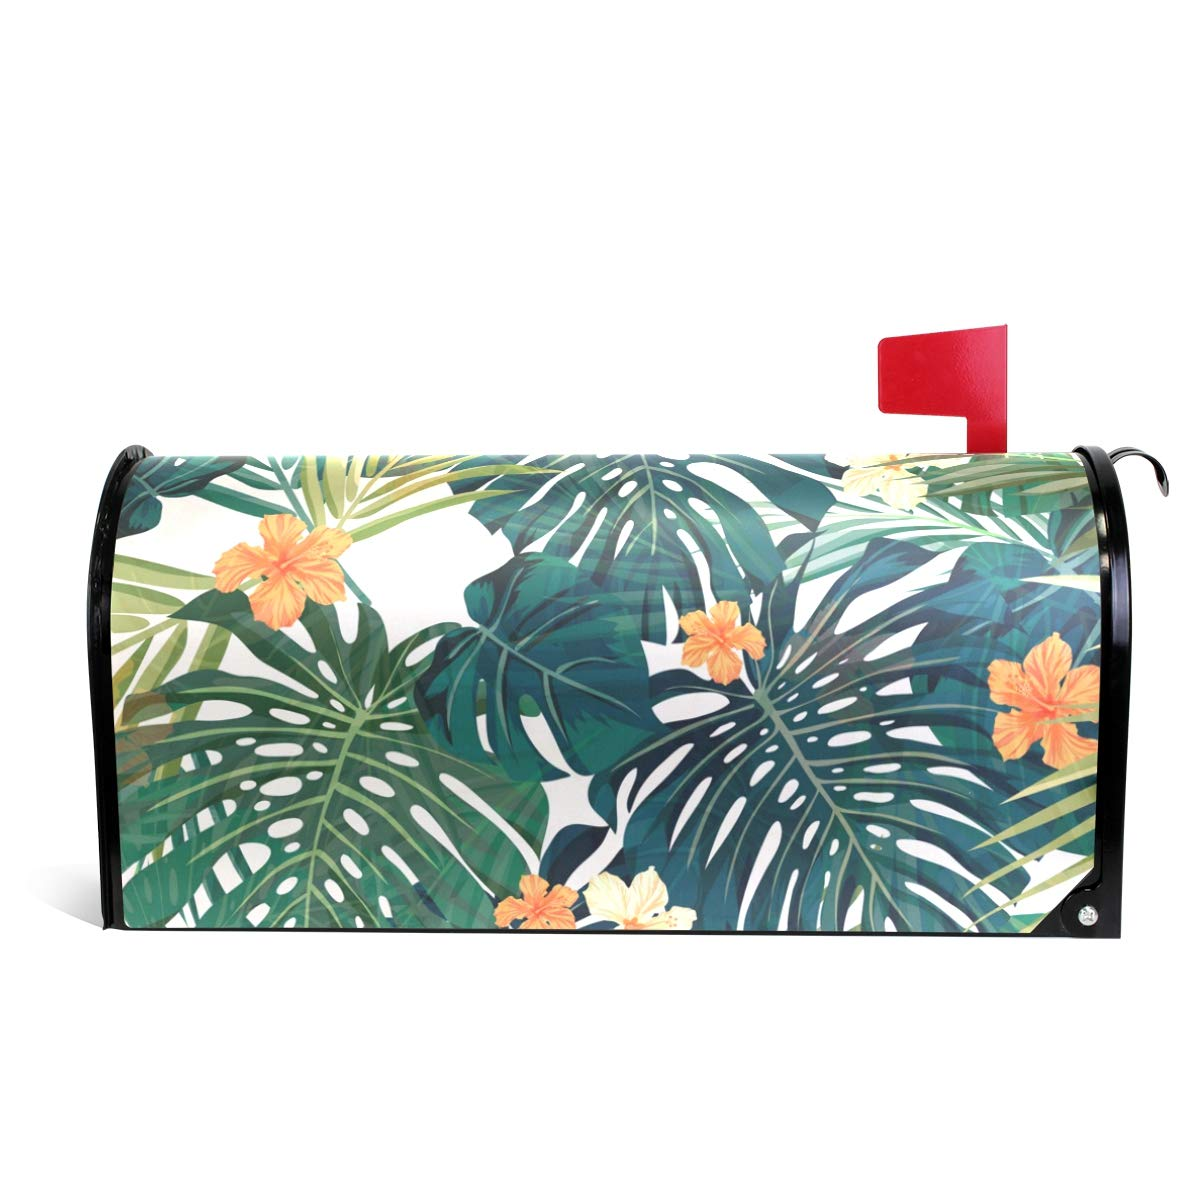 senya Magnetic Large Size Mailbox Cover Beach View Oversized